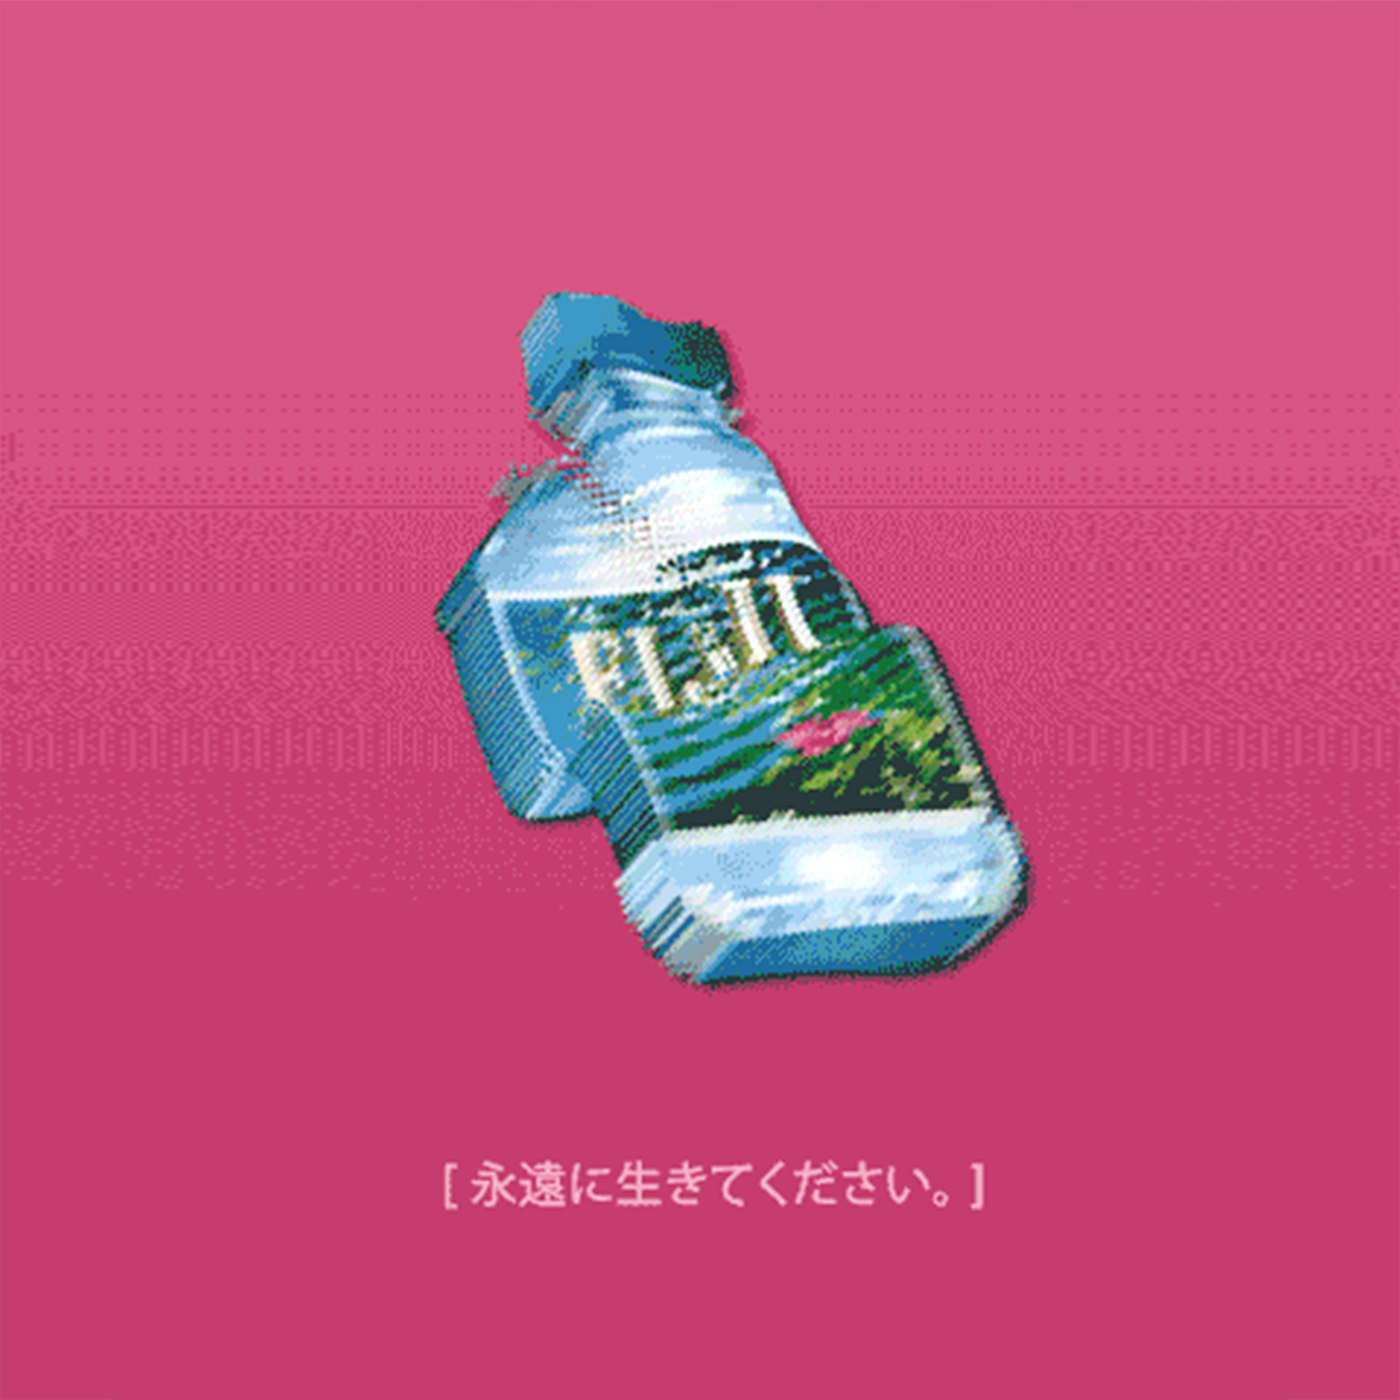 UNISEX VAPORWAVE JAPANESE FIJI WATER T SHIRT IN WHITE on Storenvy